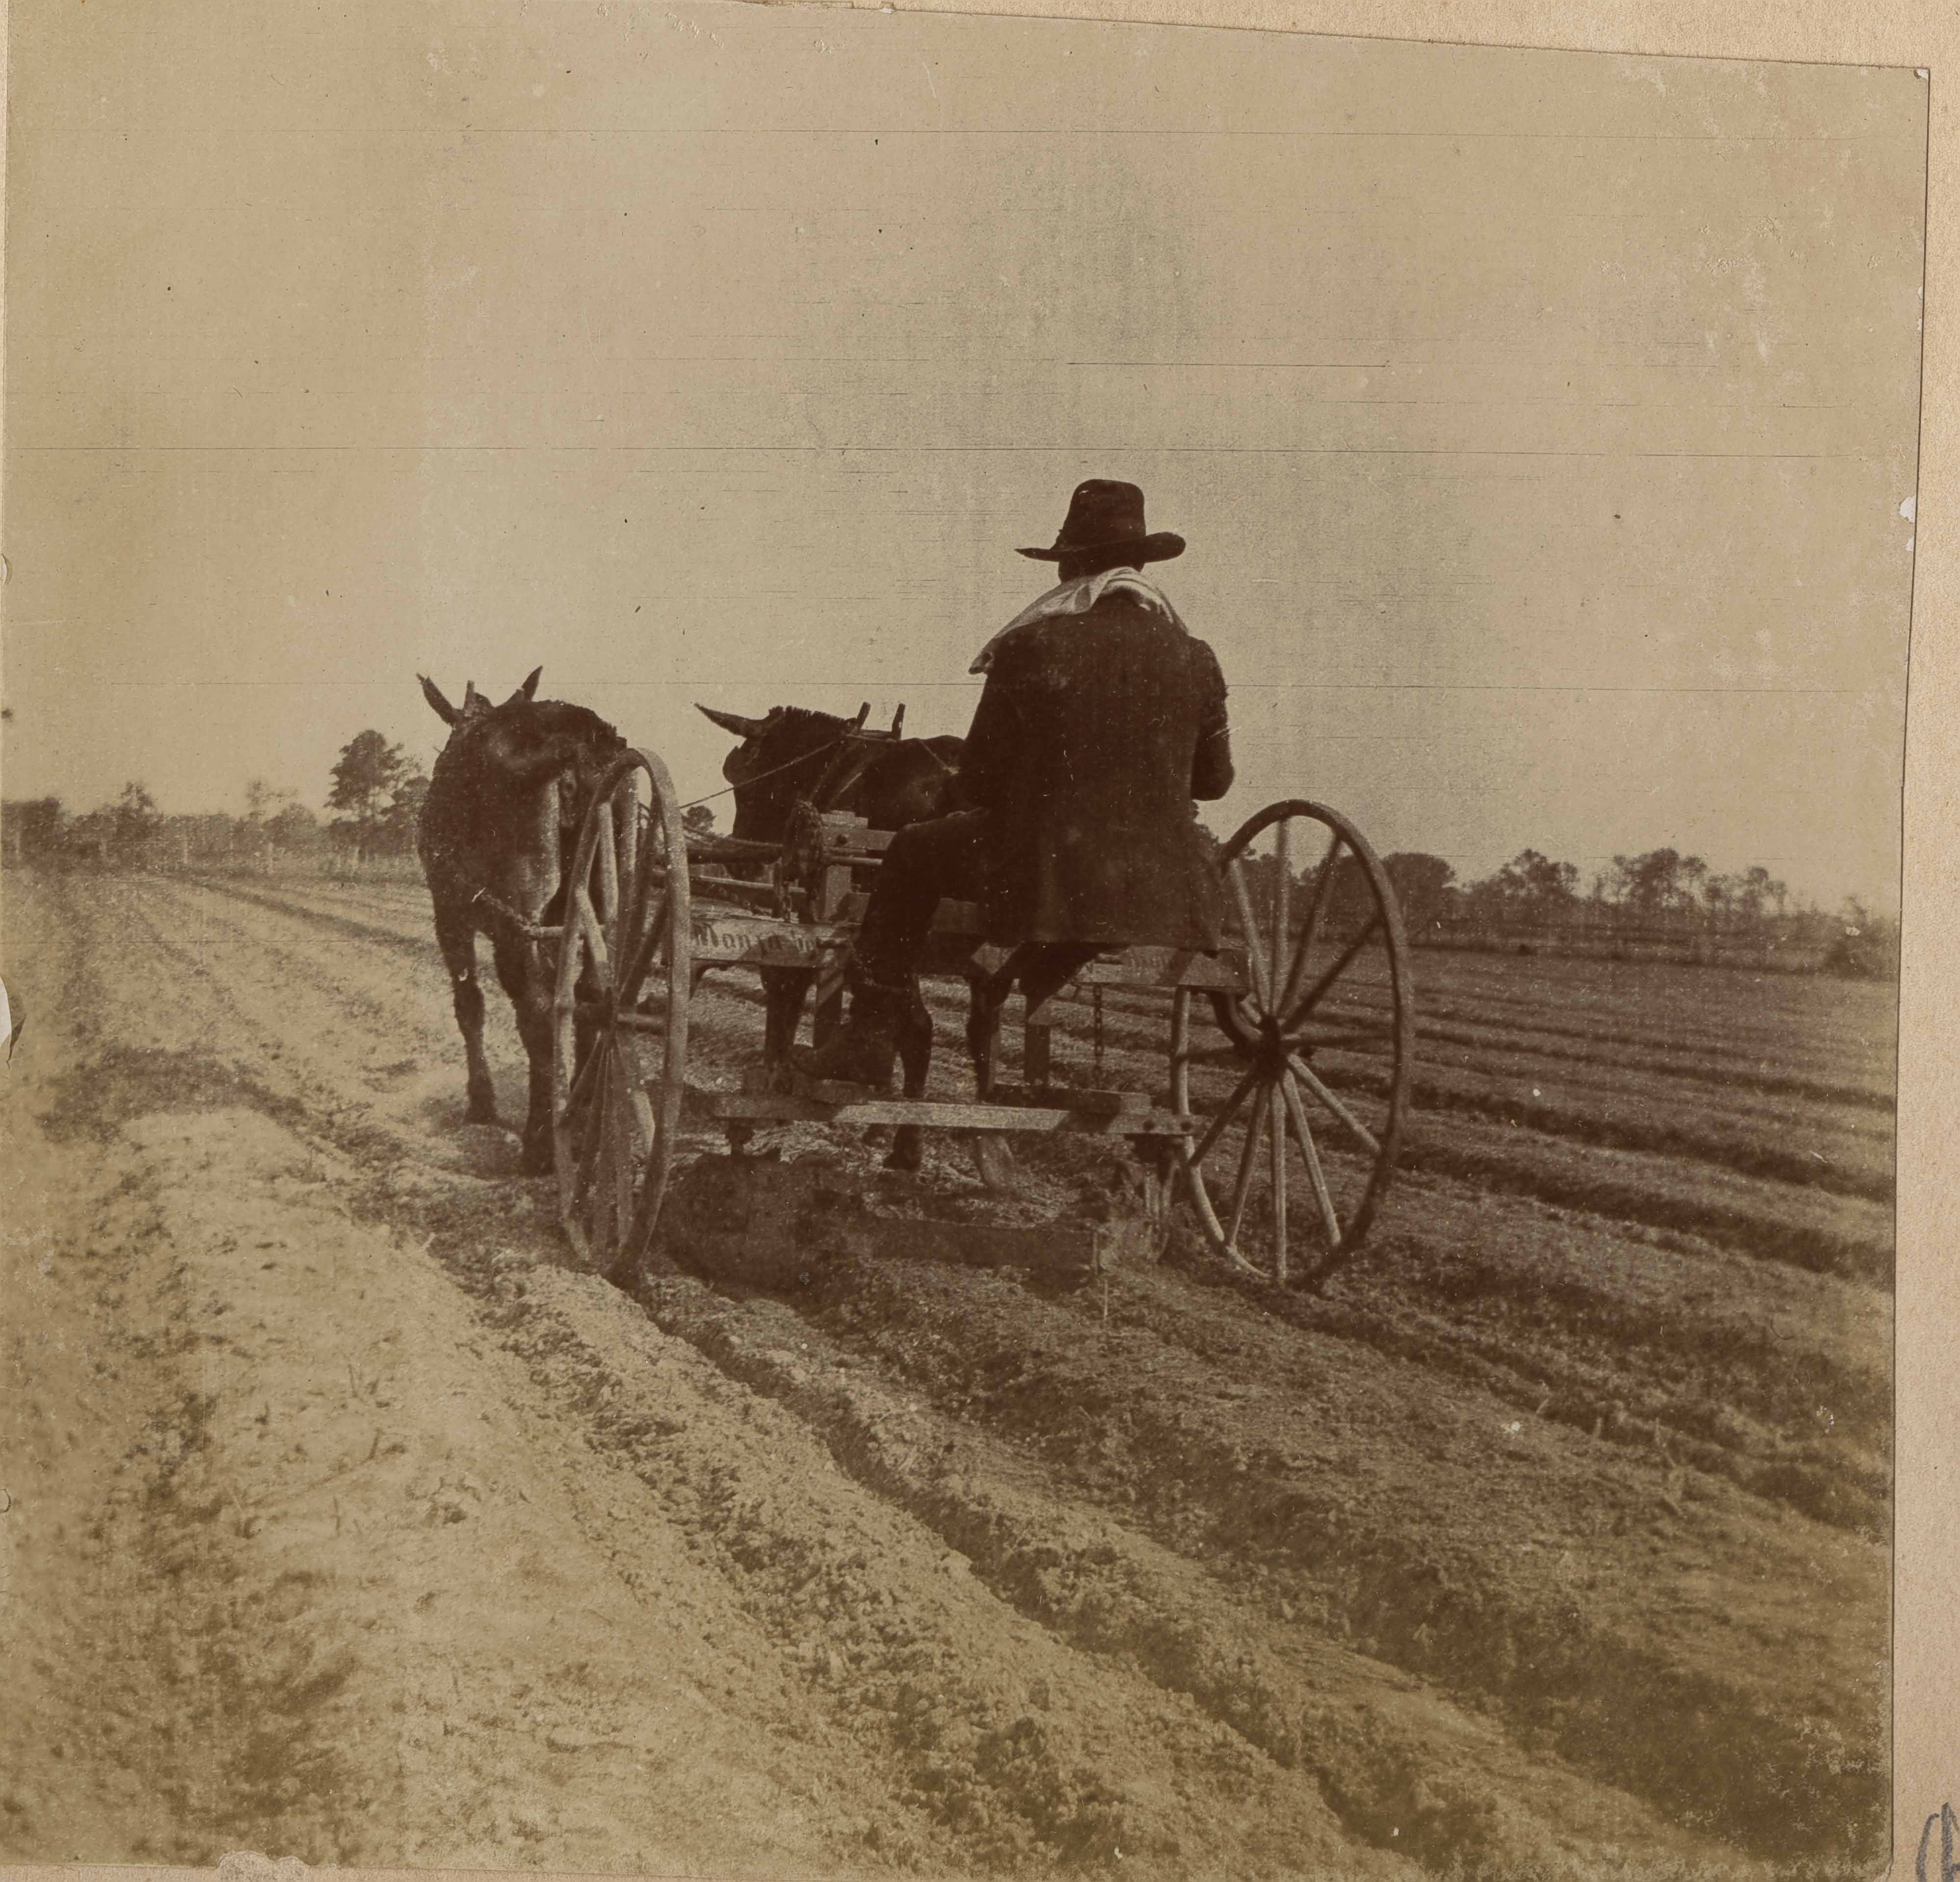 Photograph of a man sowing a field in a horse-drawn plow.